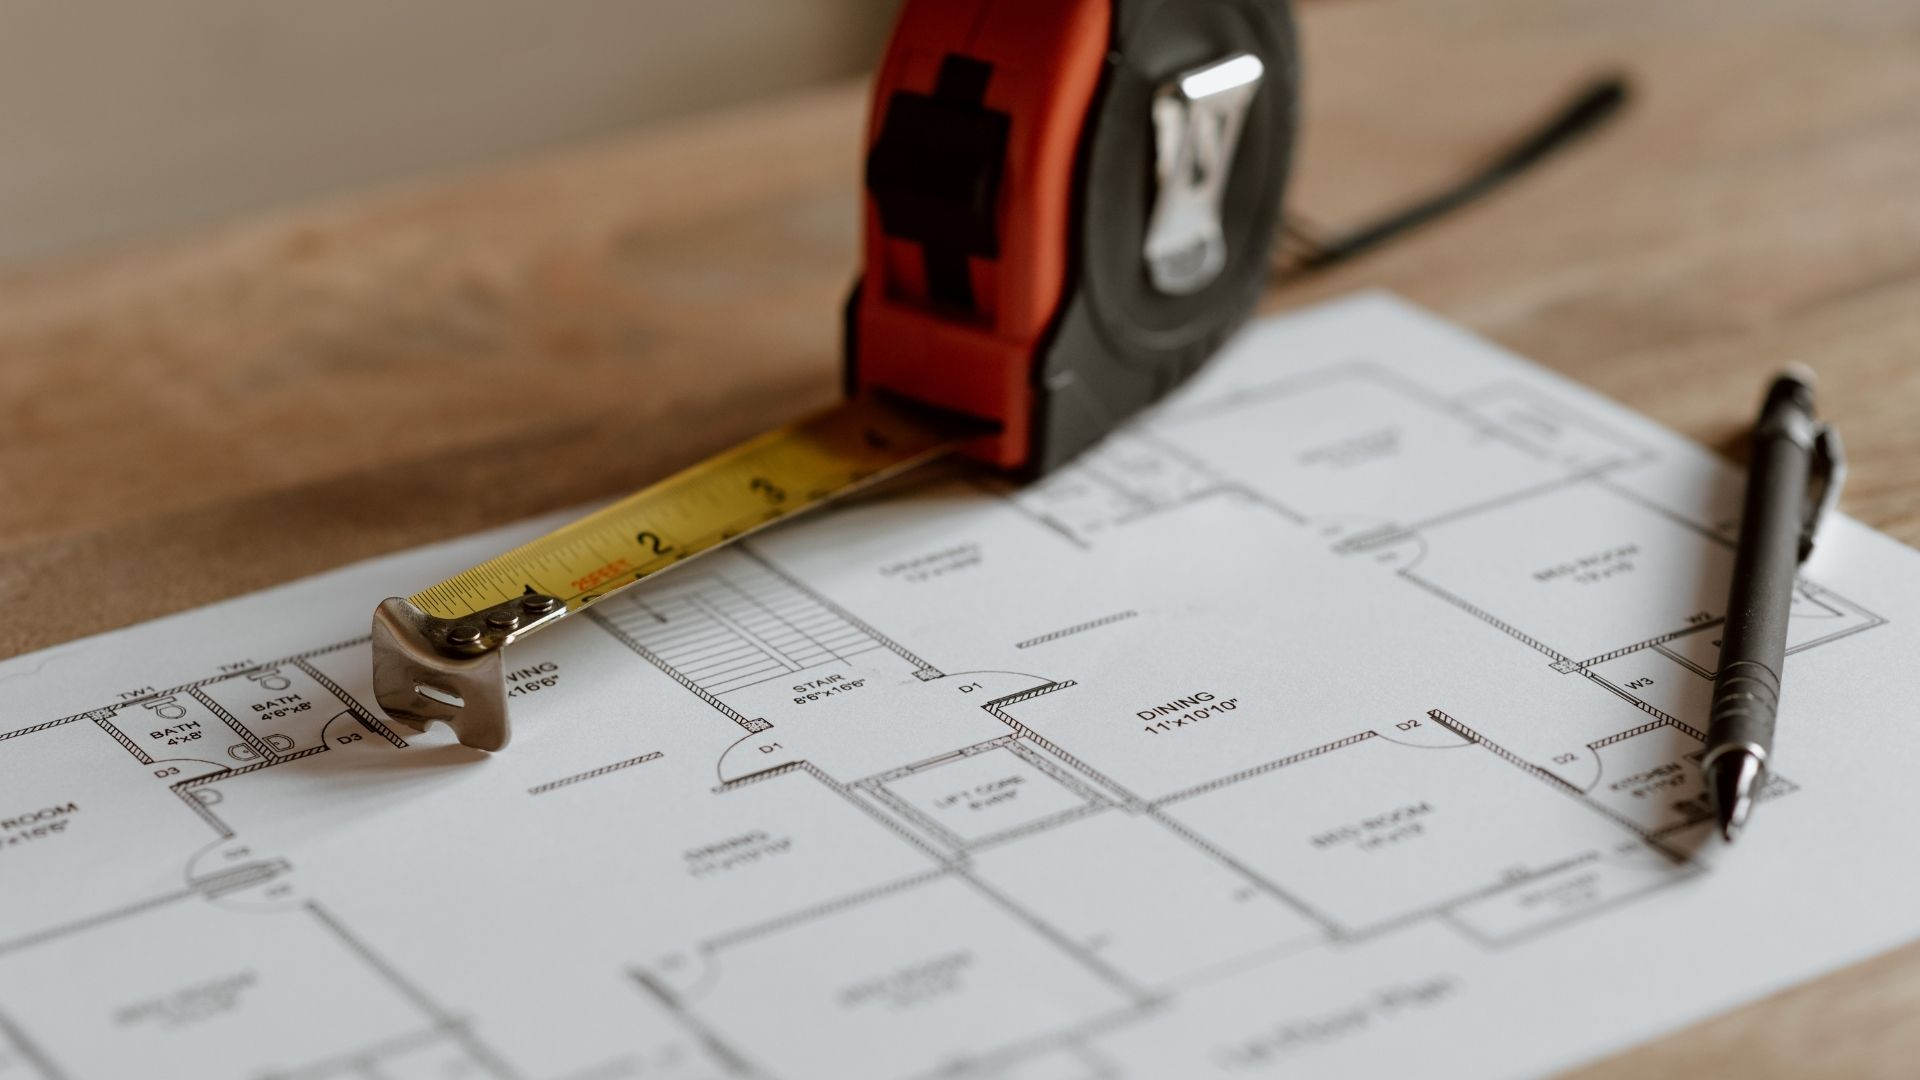 Construction plan with tape measure